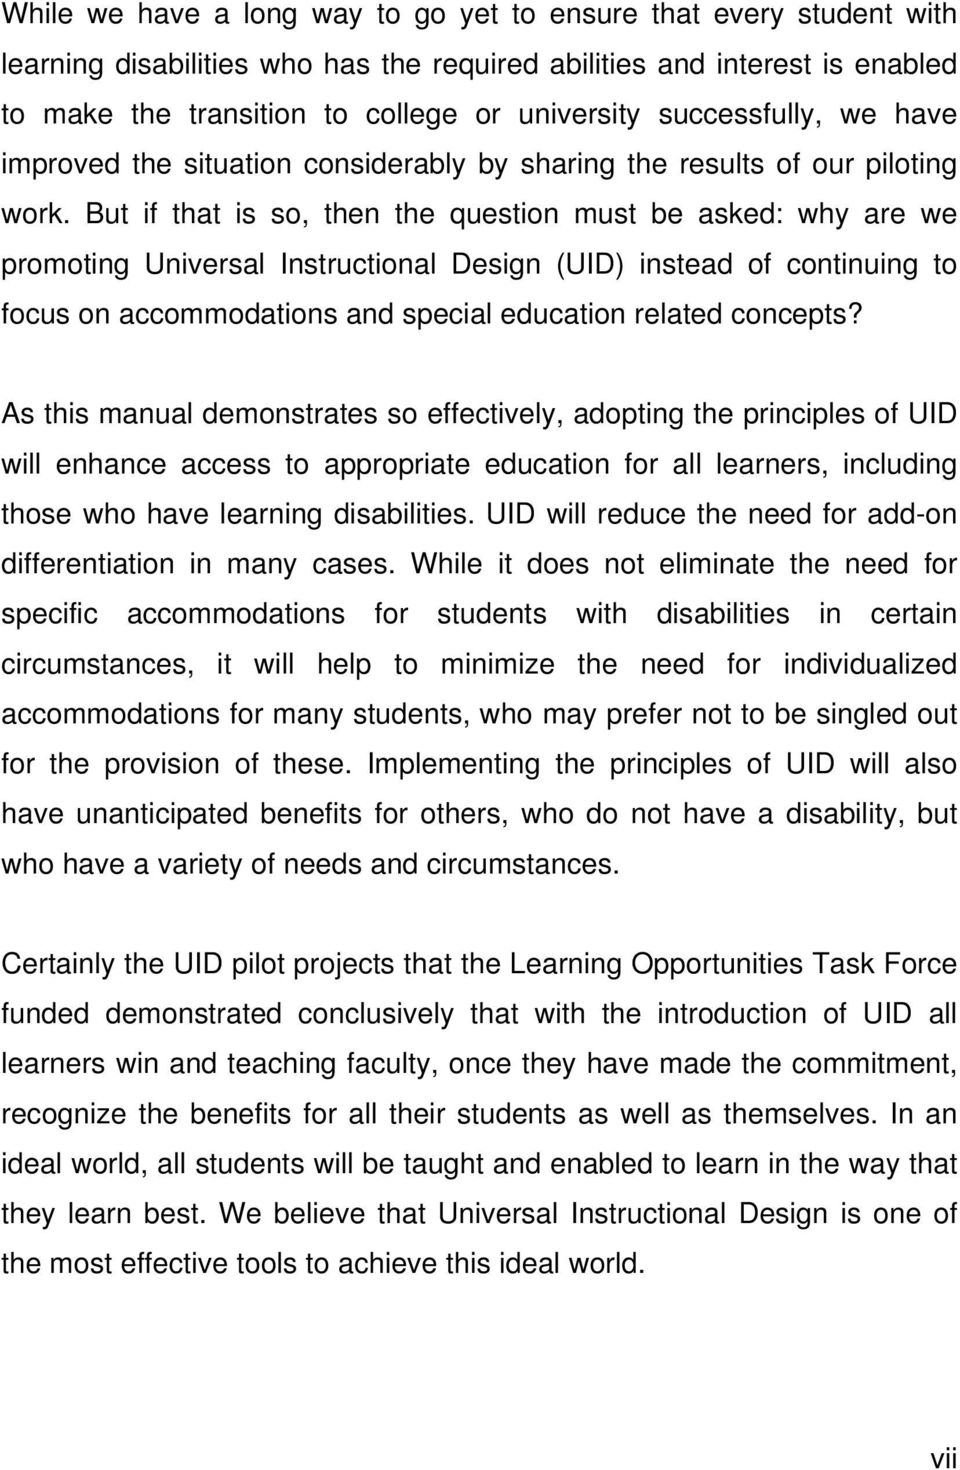 But if that is so, then the question must be asked: why are we promoting Universal Instructional Design (UID) instead of continuing to focus on accommodations and special education related concepts?